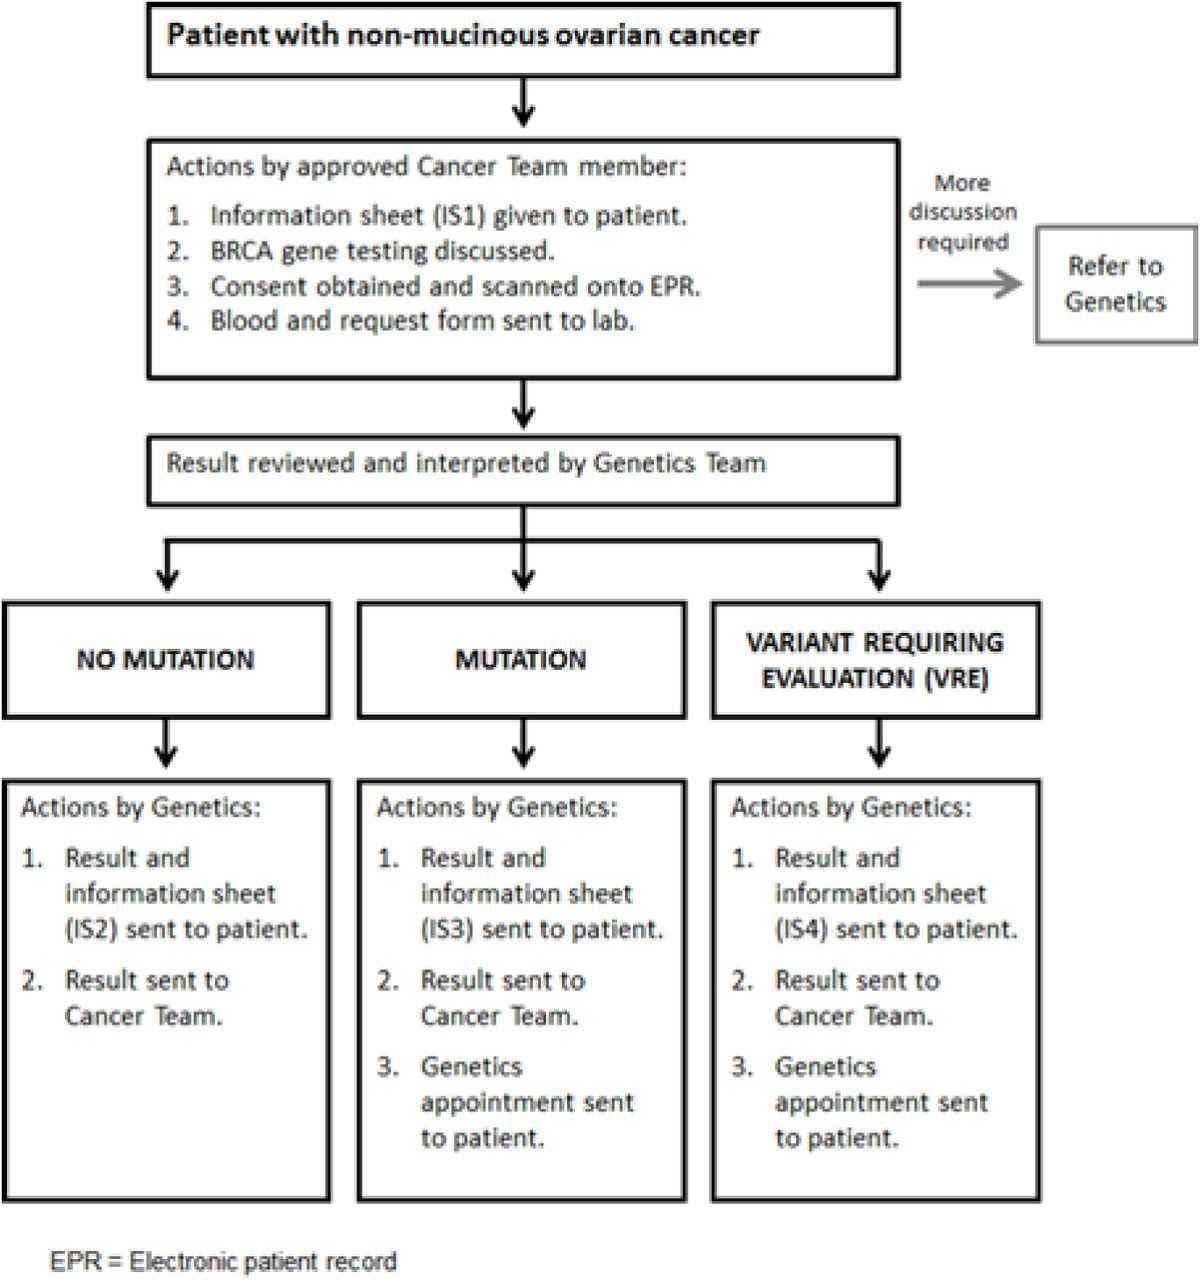 Implementing Rapid Robust Cost Effective Patient Centred Routine Genetic Testing In Ovarian Cancer Patients Biorxiv